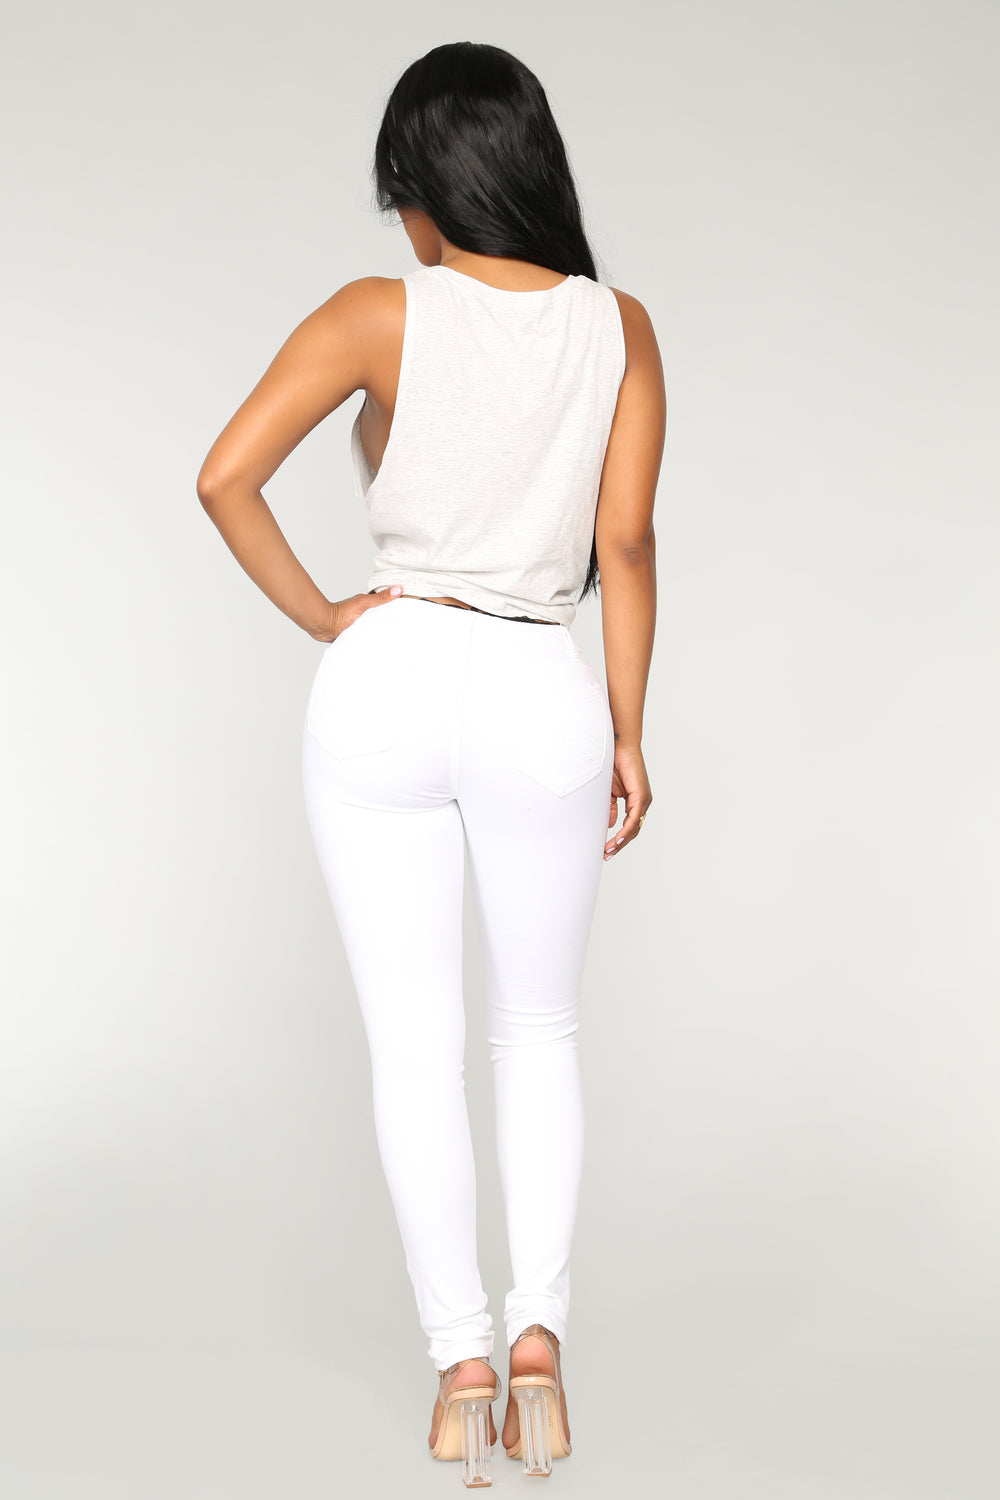 Back to Back Skinny Jeans - White